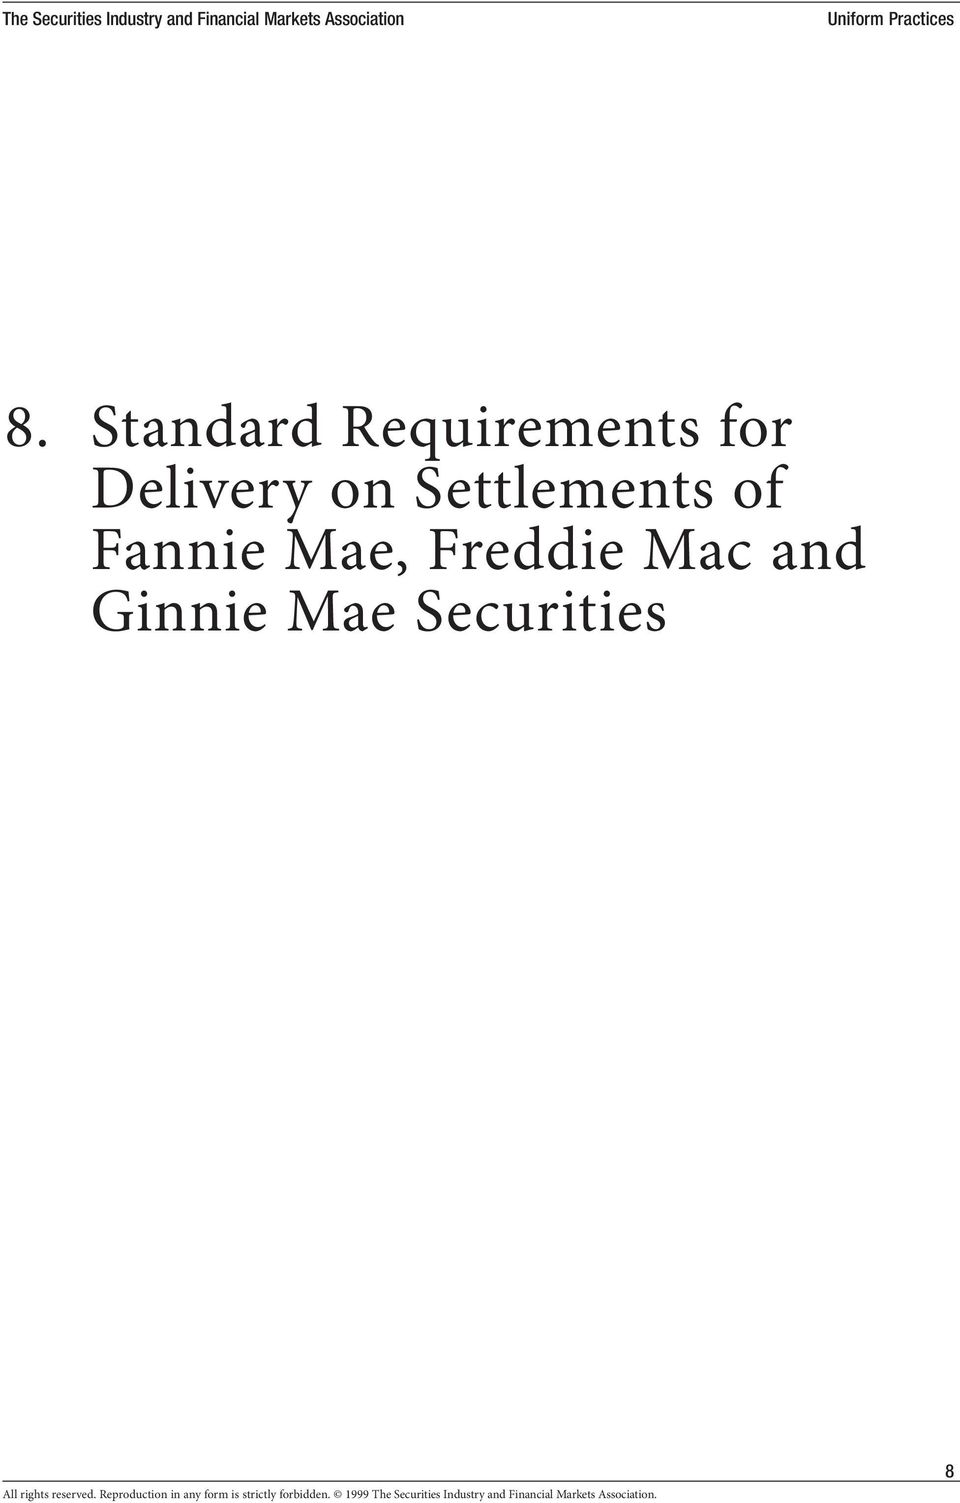 8 Standard Requirements For Delivery On Settlements Of Fannie Mae